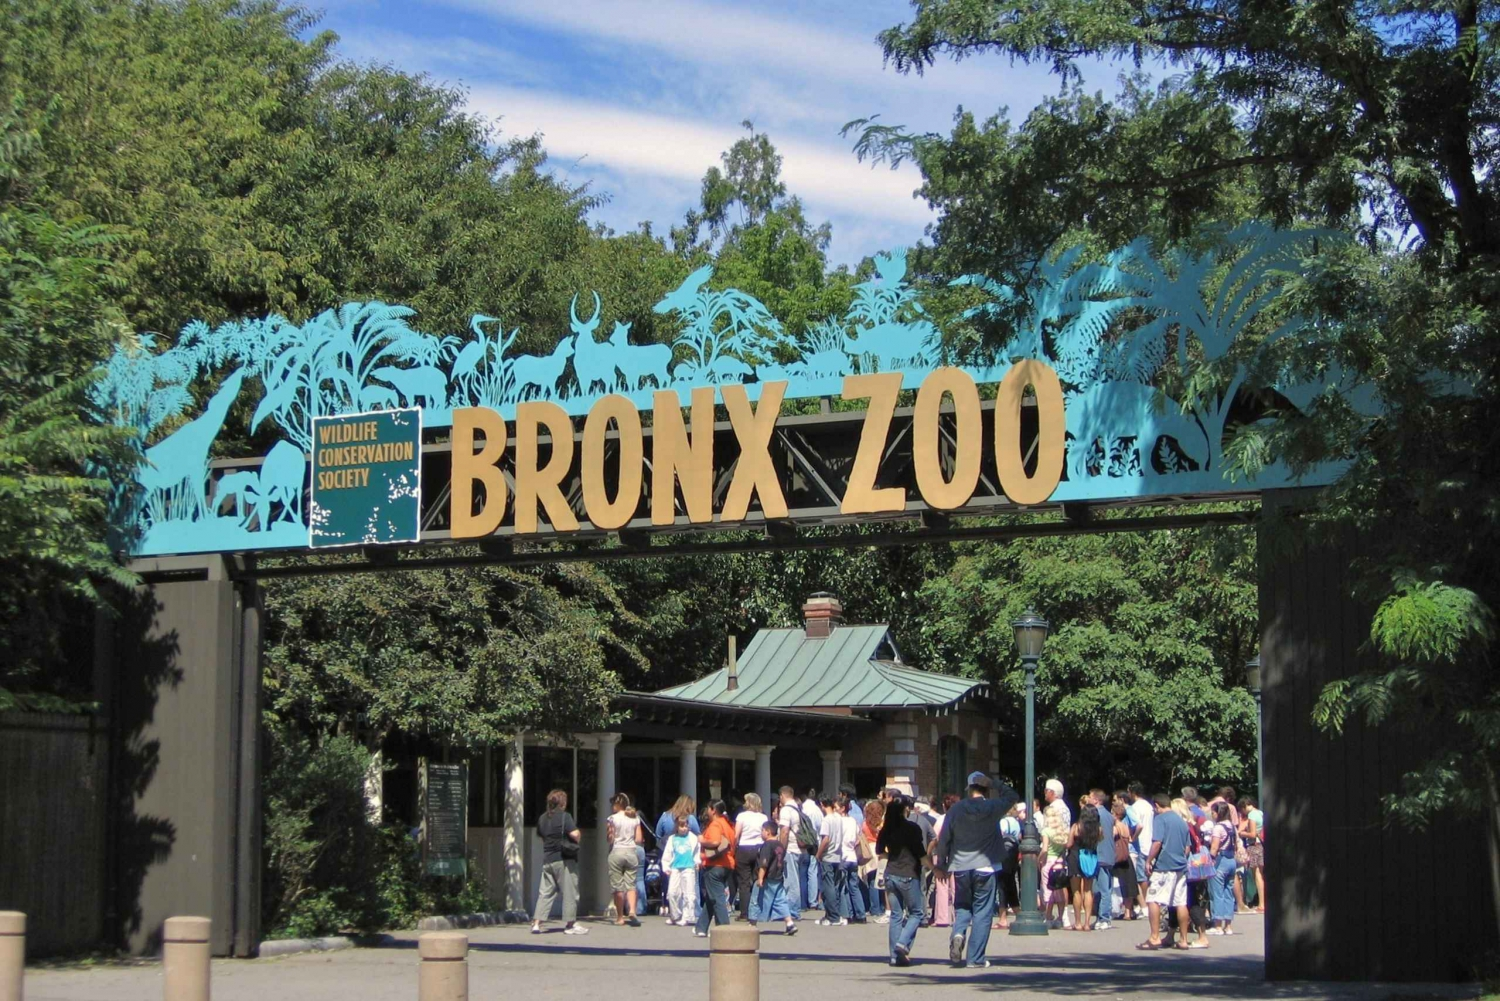 New York City: Top Sights Walking Tour and Bronx Zoo Ticket